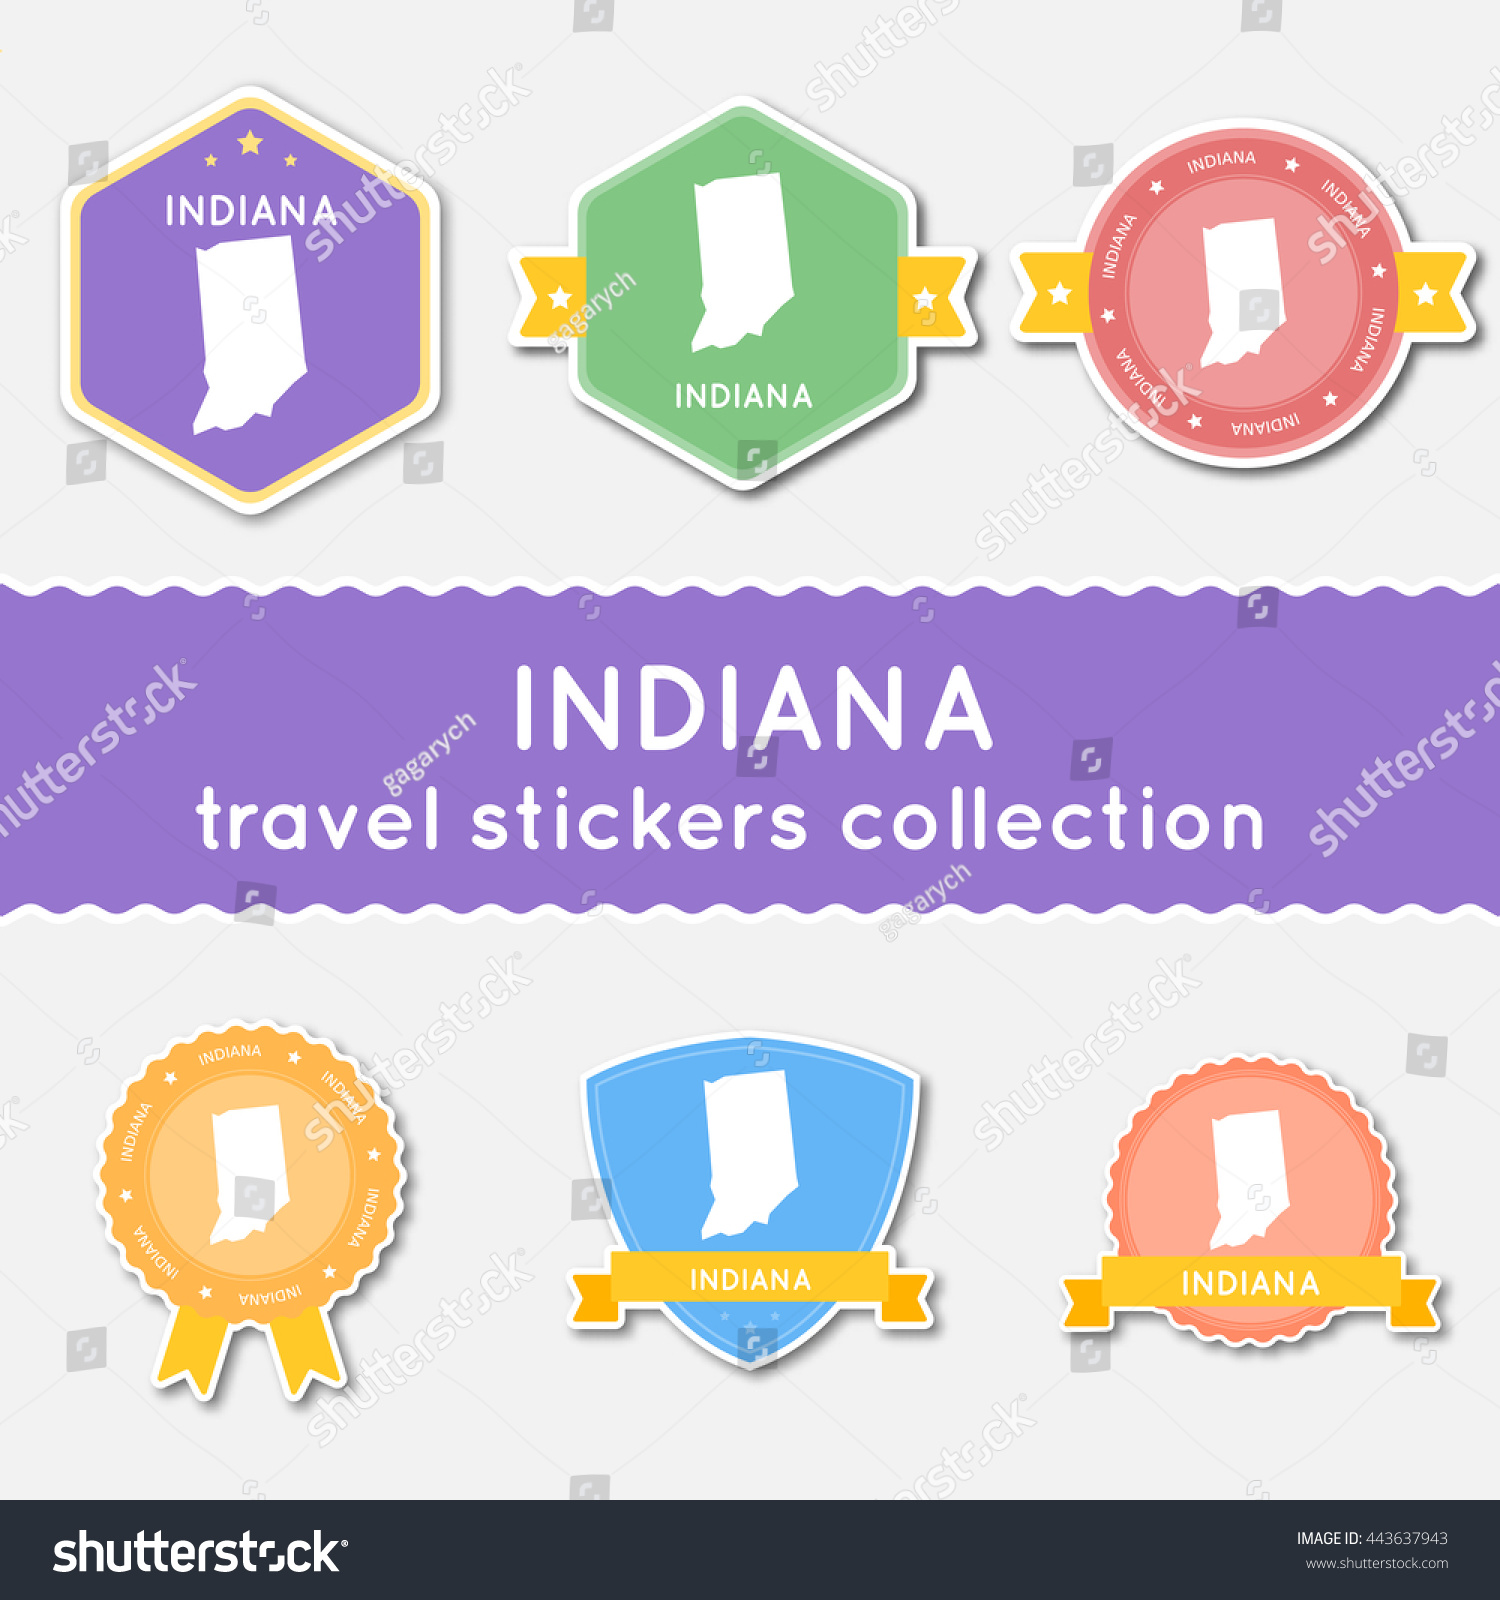 Indiana Travel Stickers Collection Big Set Of Stickers With Us – Indiana Travel Map